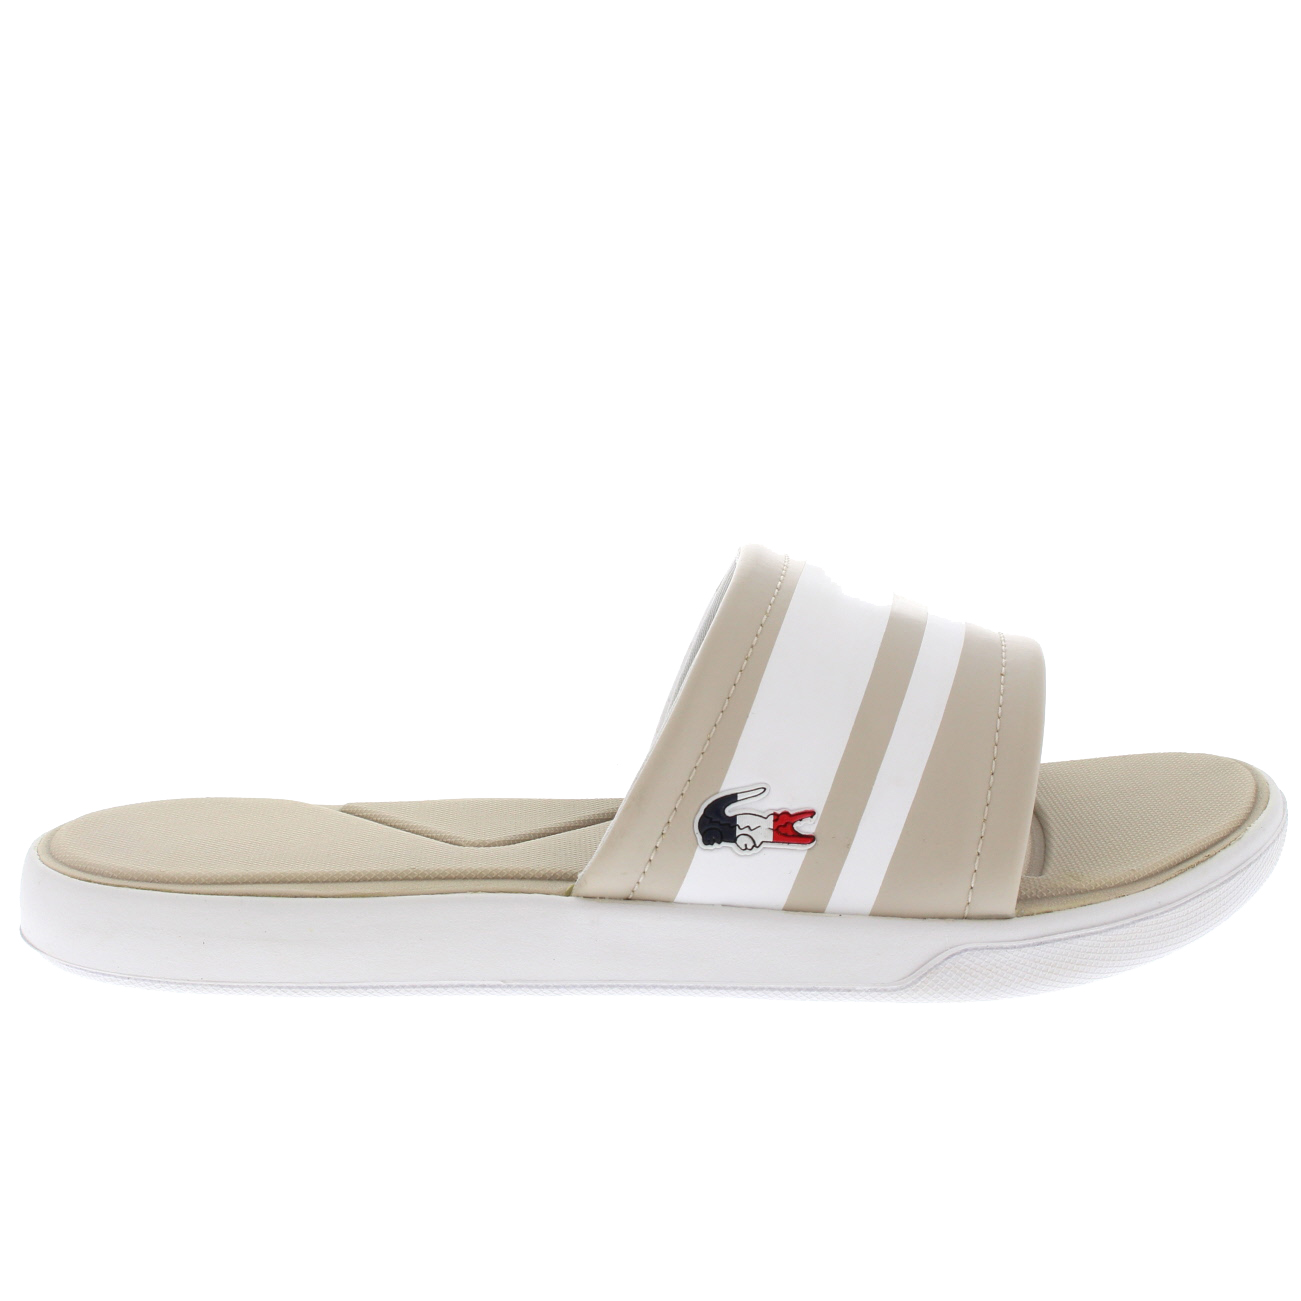 be8092d04 Details about Ladies Lacoste L.30 Slide 317 1 Sports Lightweight Sliders  Sandals All Sizes